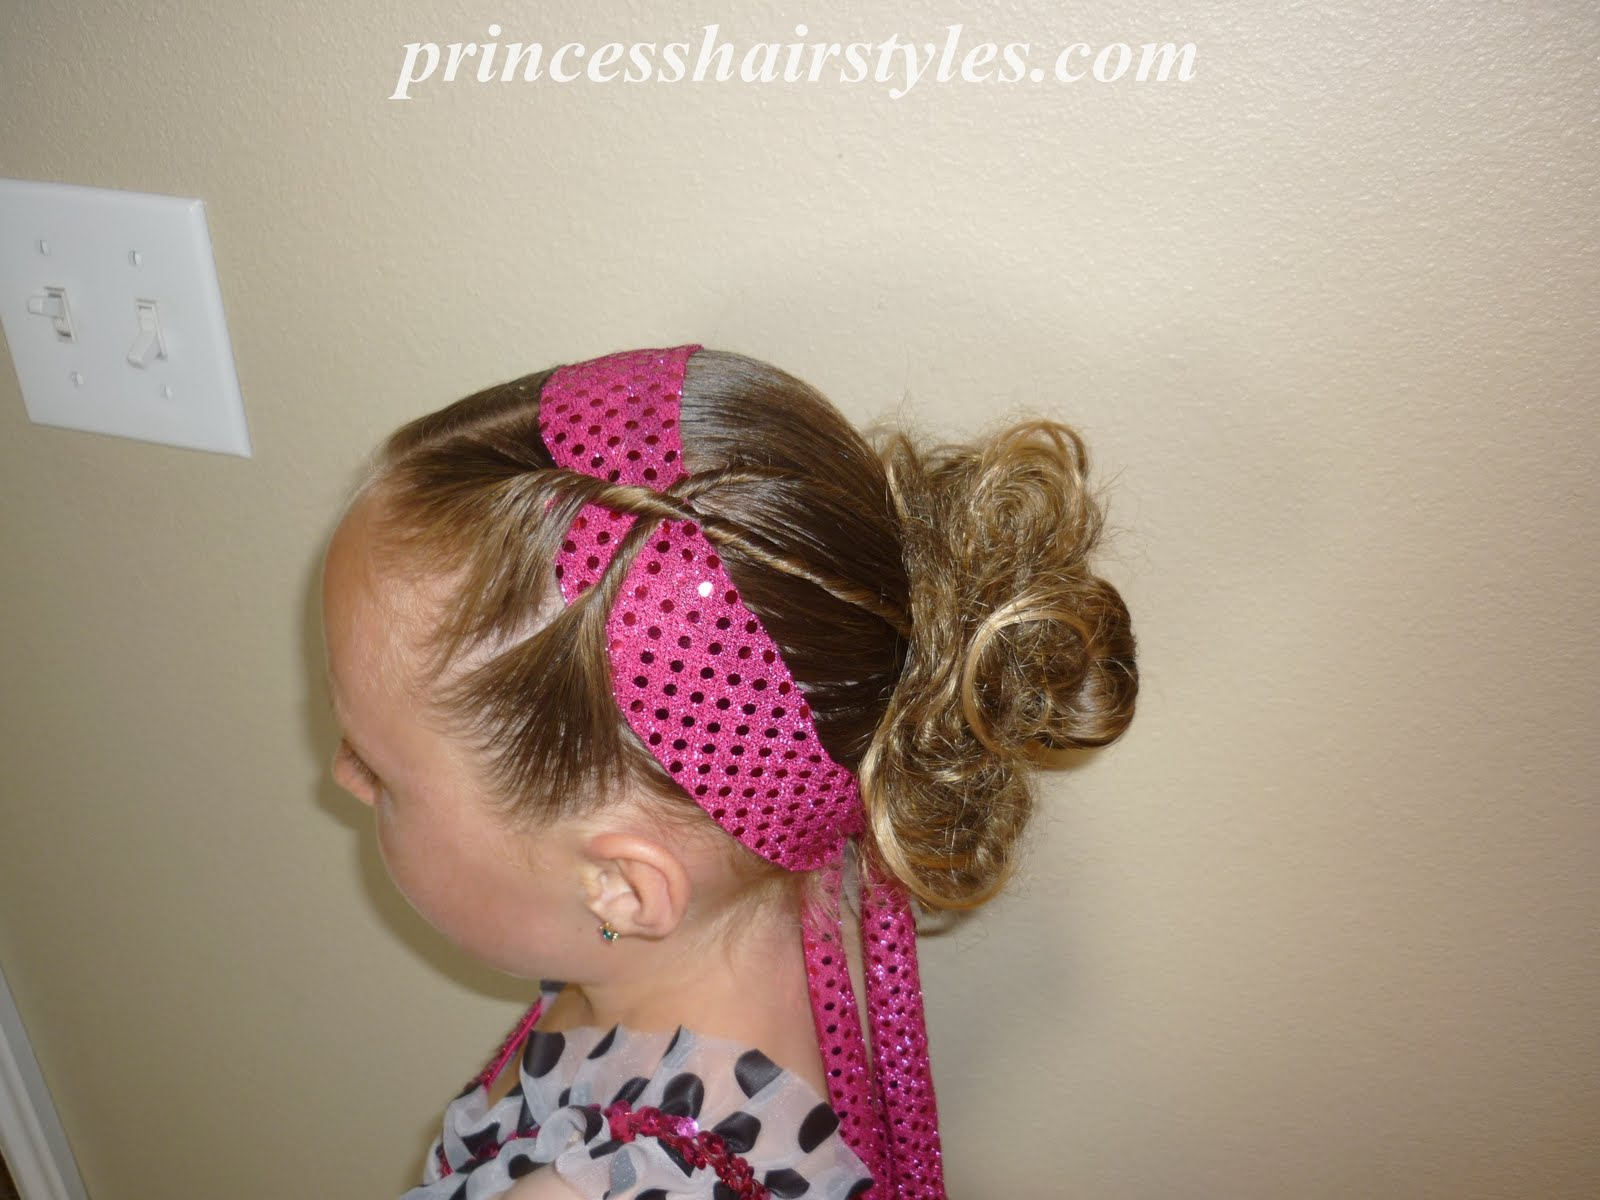 hairstyles for dance competition, recital | hairstyles for